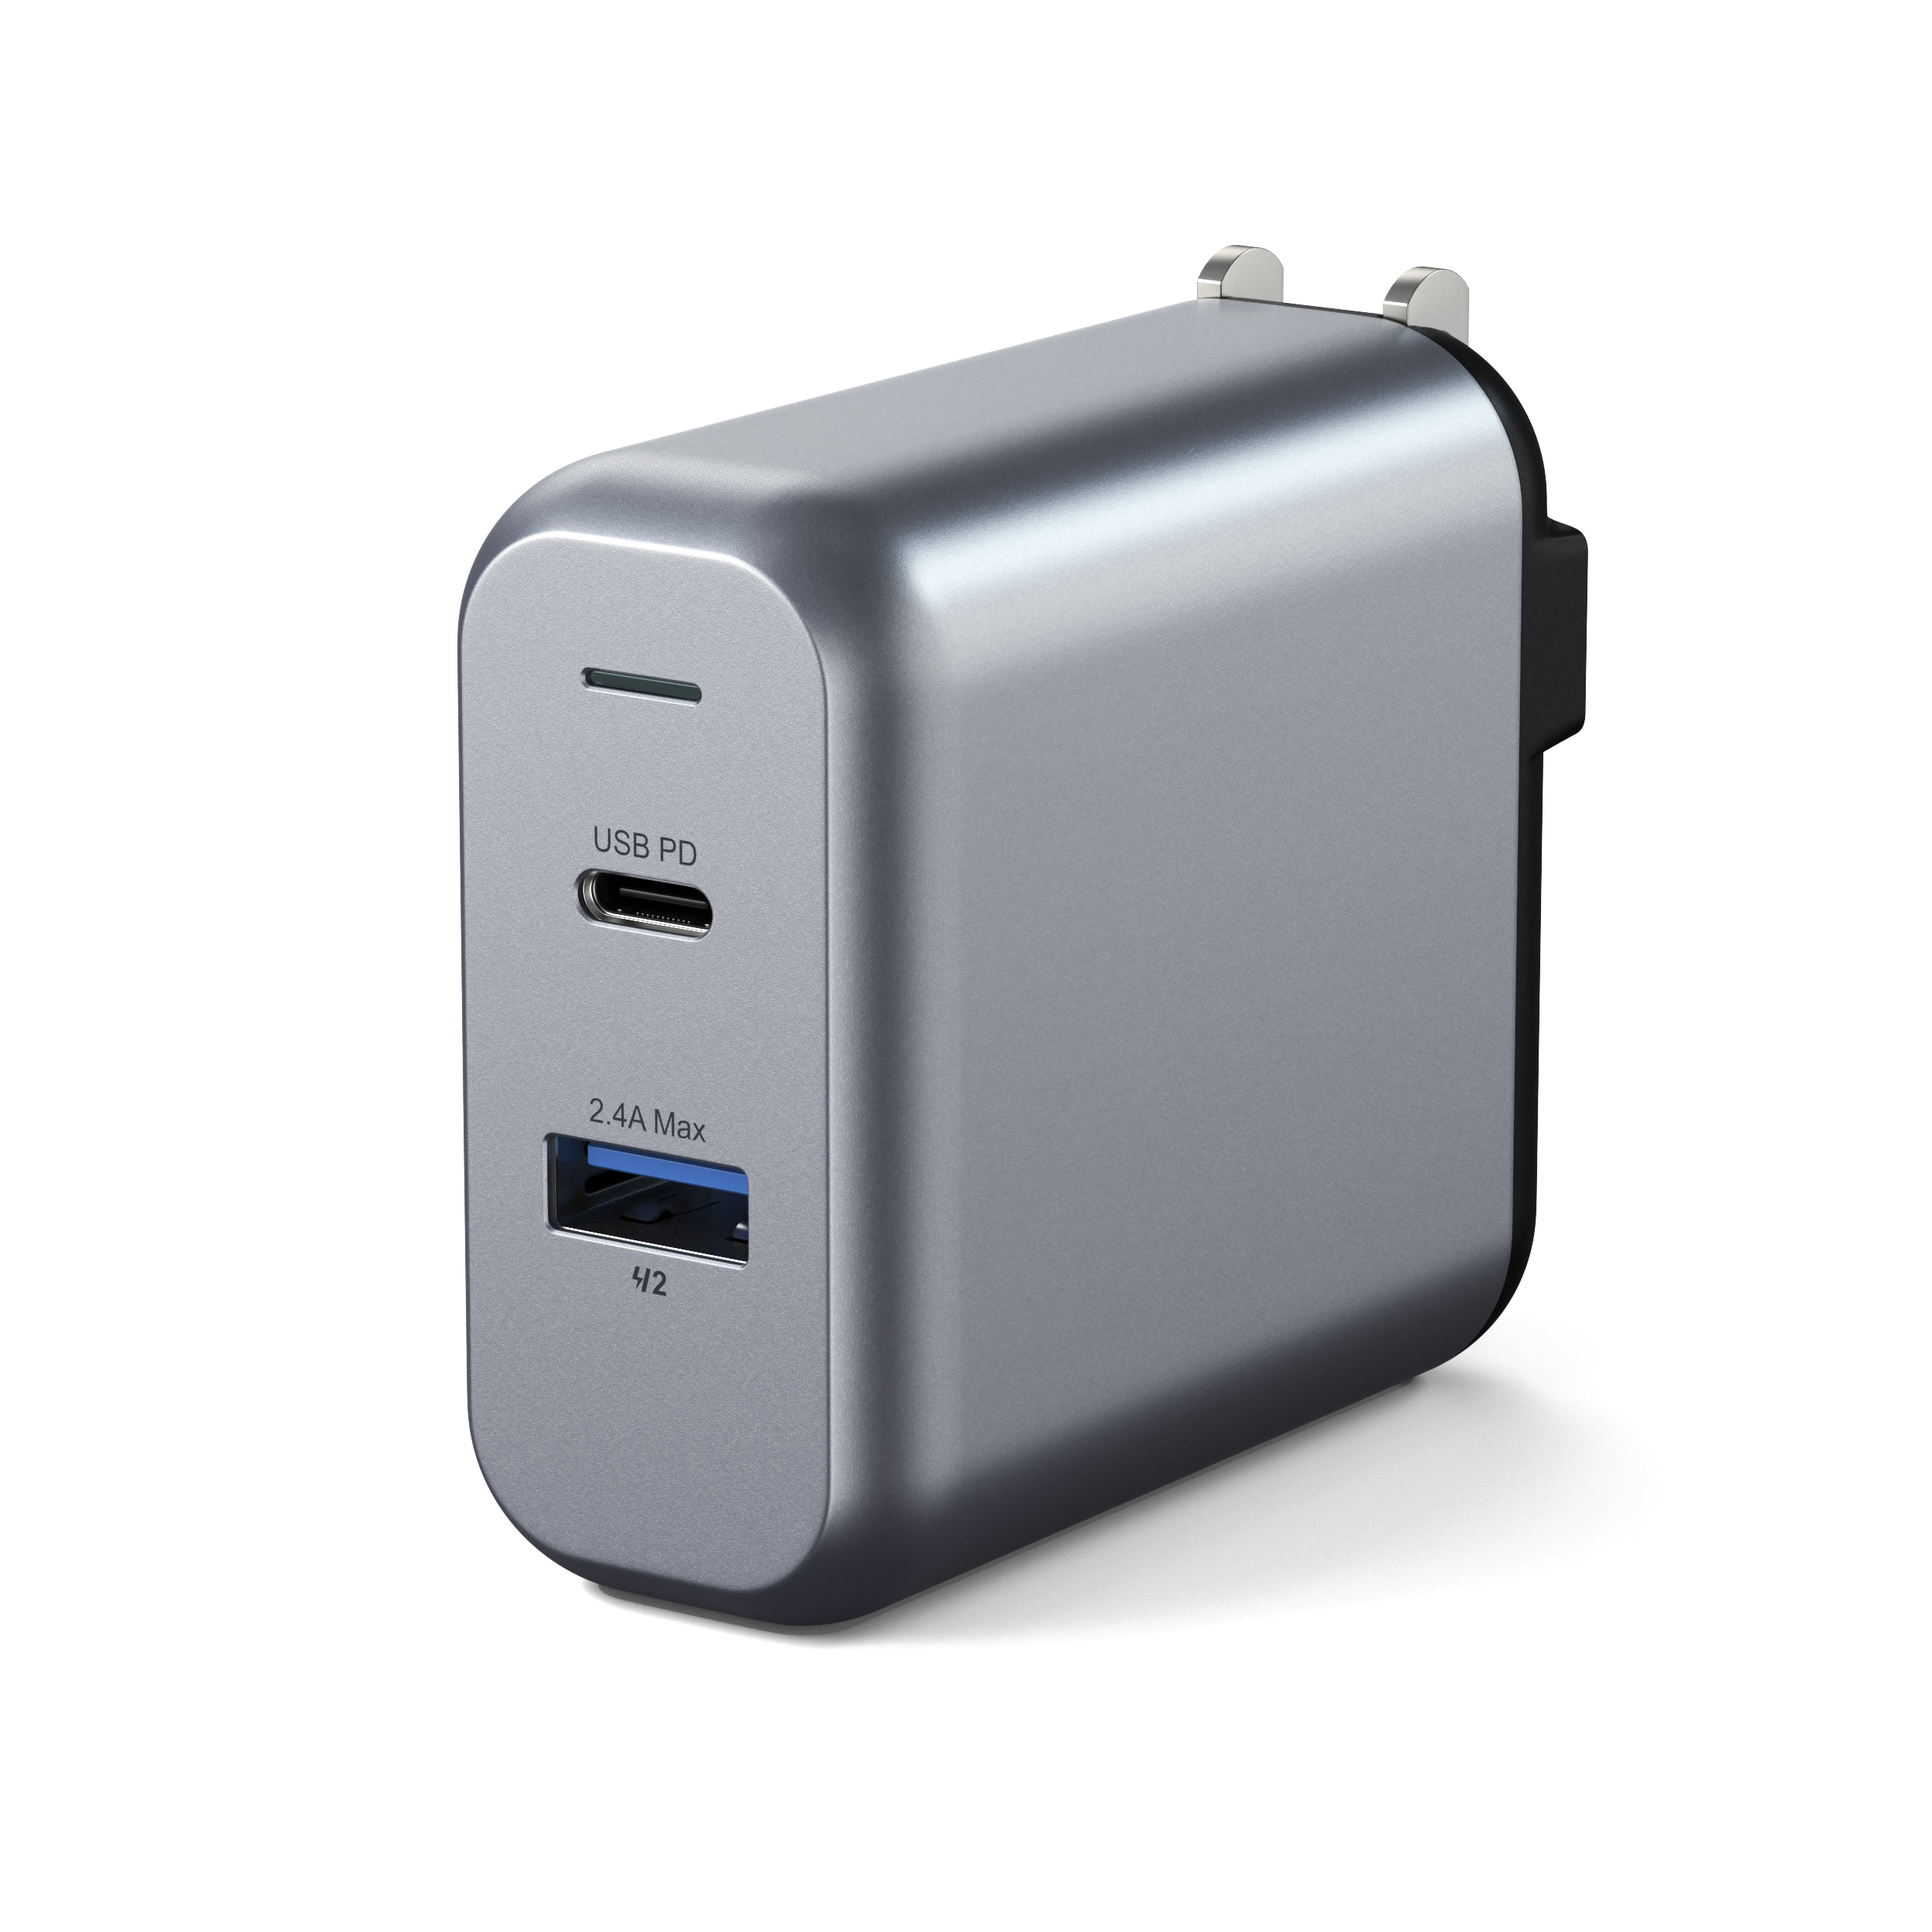 Ipad Lader Satechi Launches 30w And 75w Usb C Chargers Powers Macbook Ipad